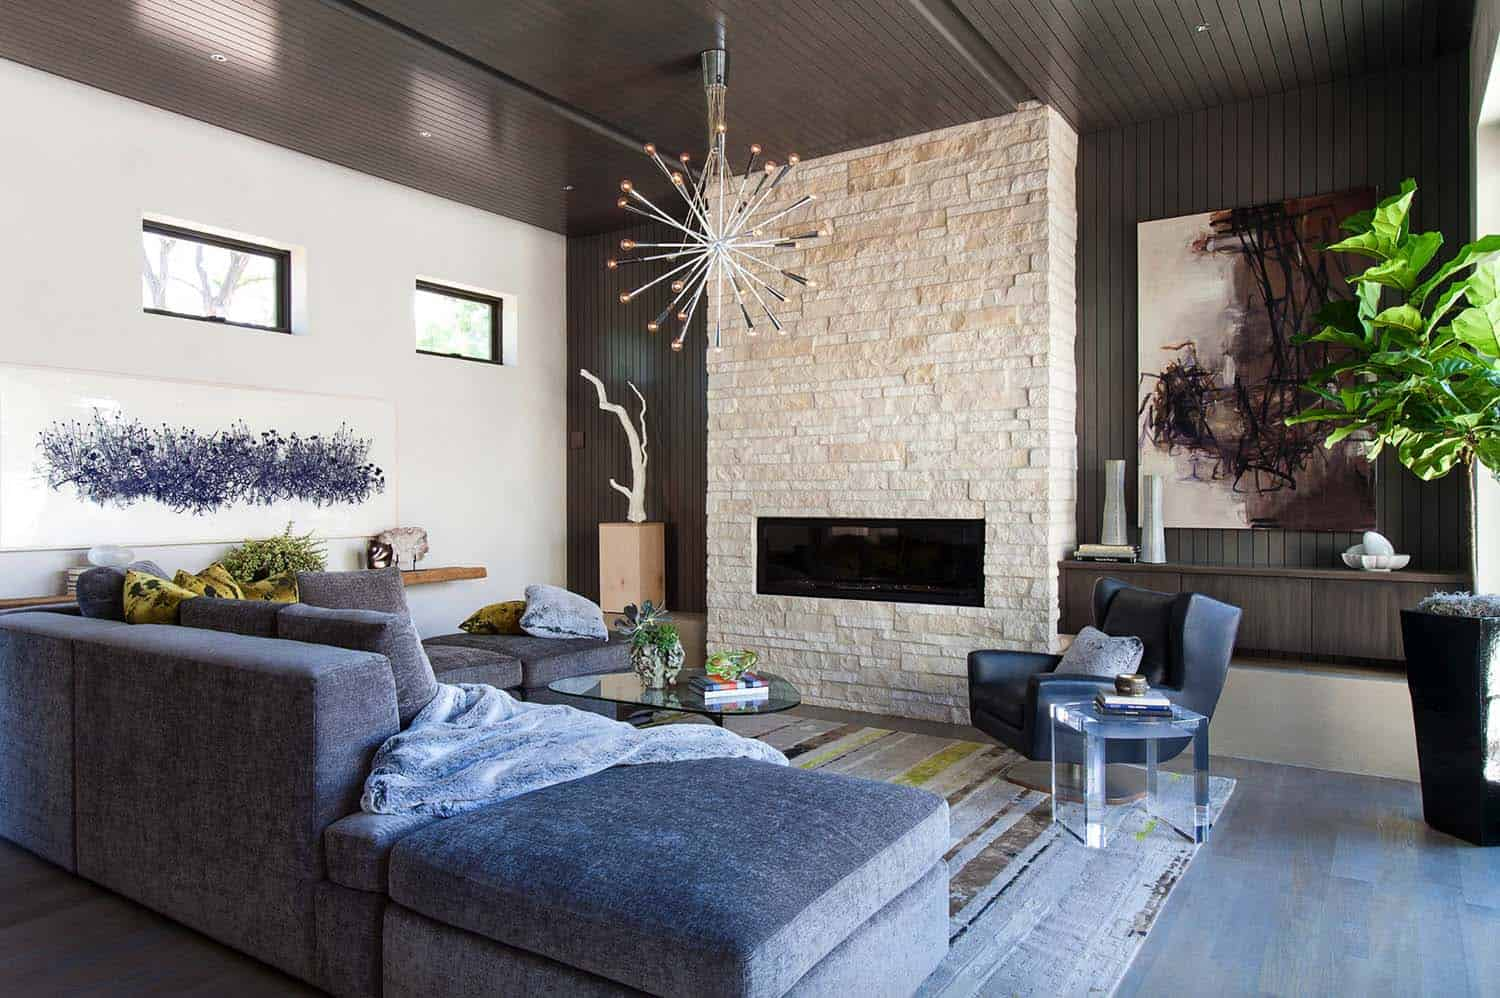 mid century modern living room lighting cabinets built in 38 absolutely gorgeous ideas a denver colorado home showcases this beautiful illuminating the space is eurofase 22801 zazu 20 light pendant